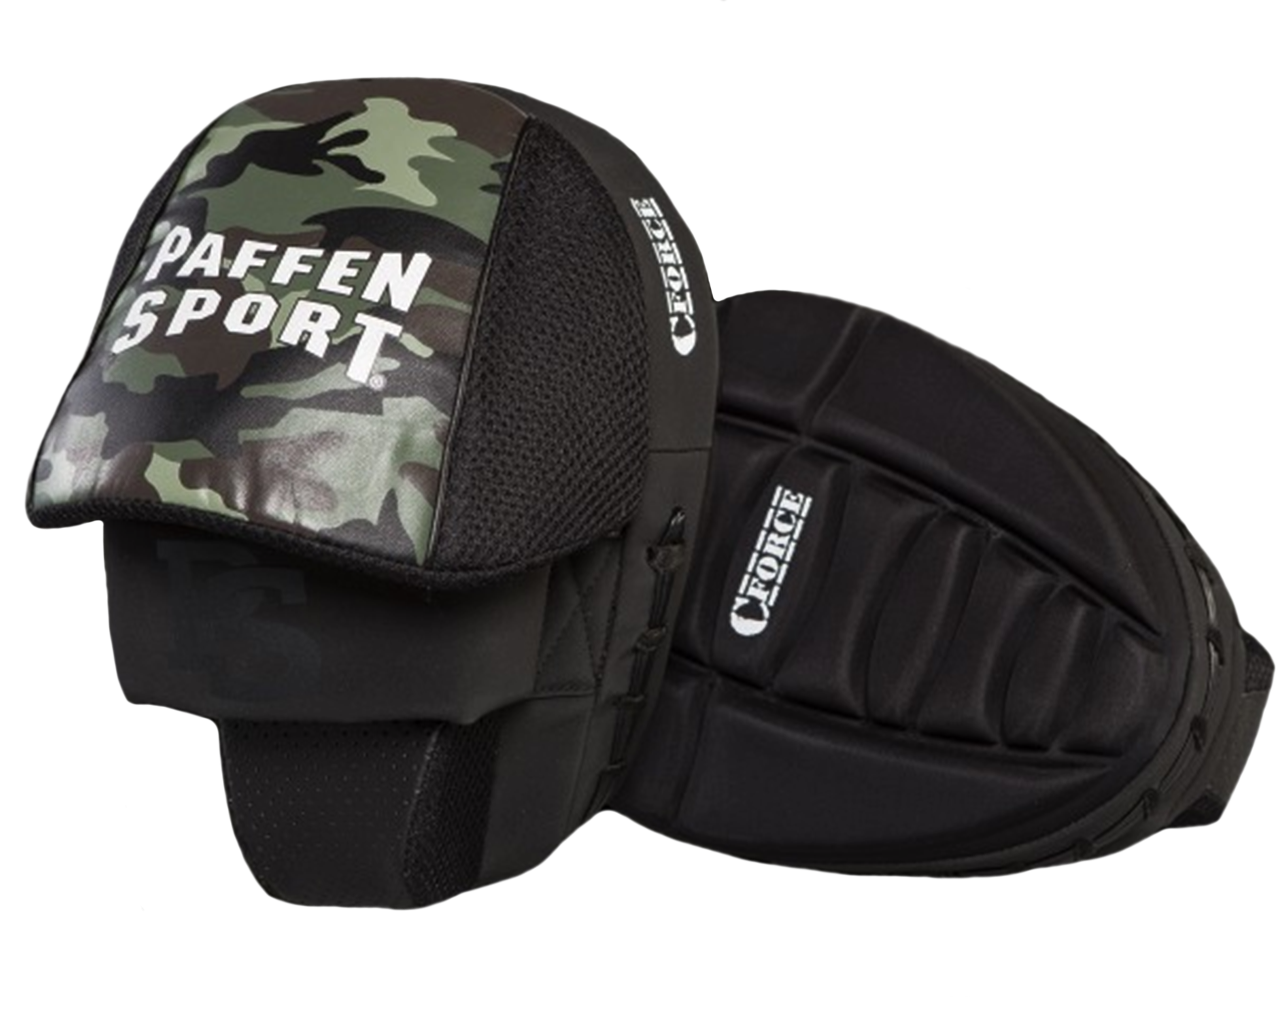 Paffen Sport G-Force Handpads